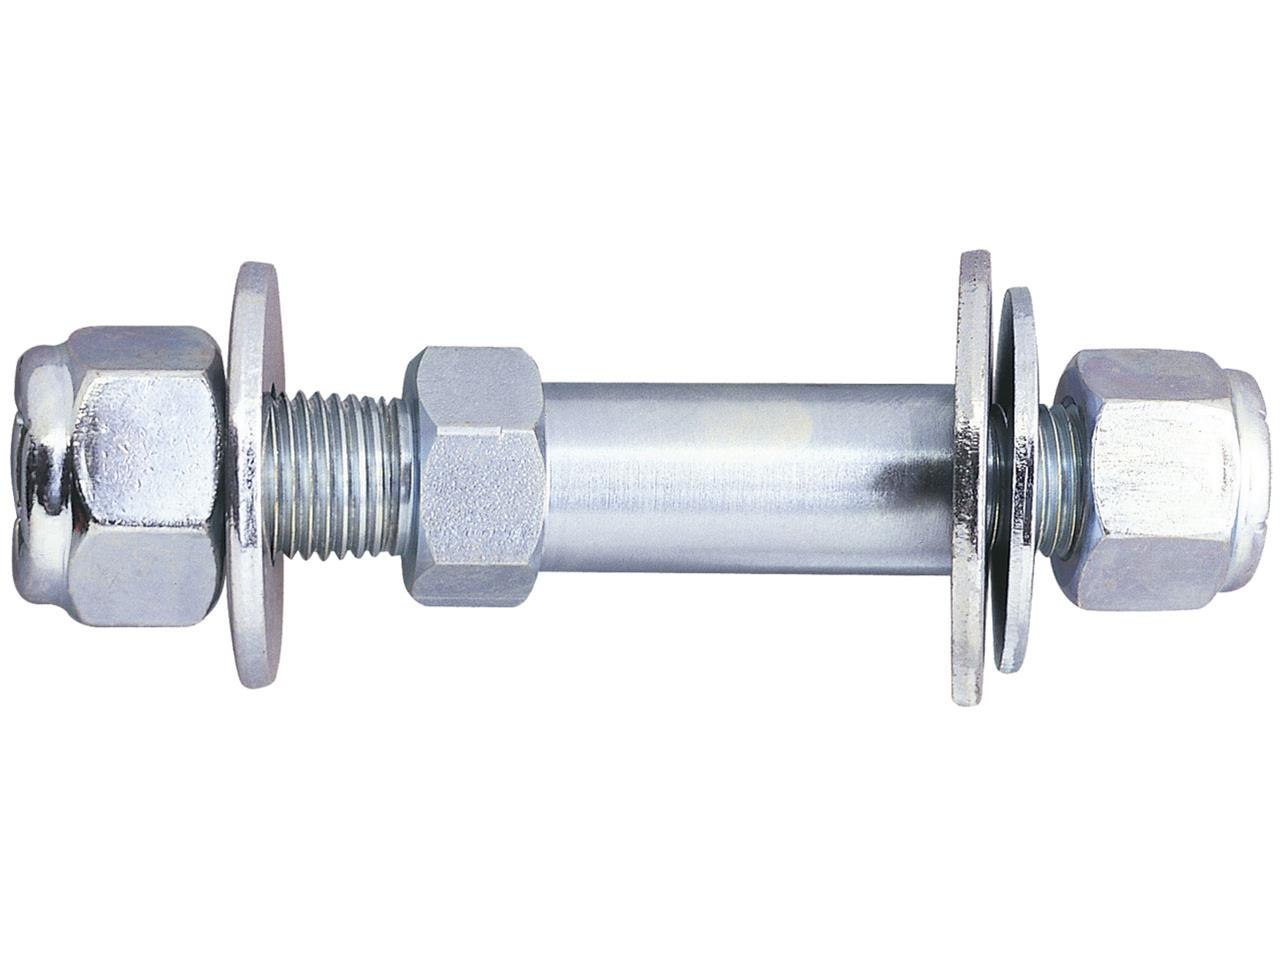 Picture of QA1 Stock Mount Shock Lower Bolt Kit